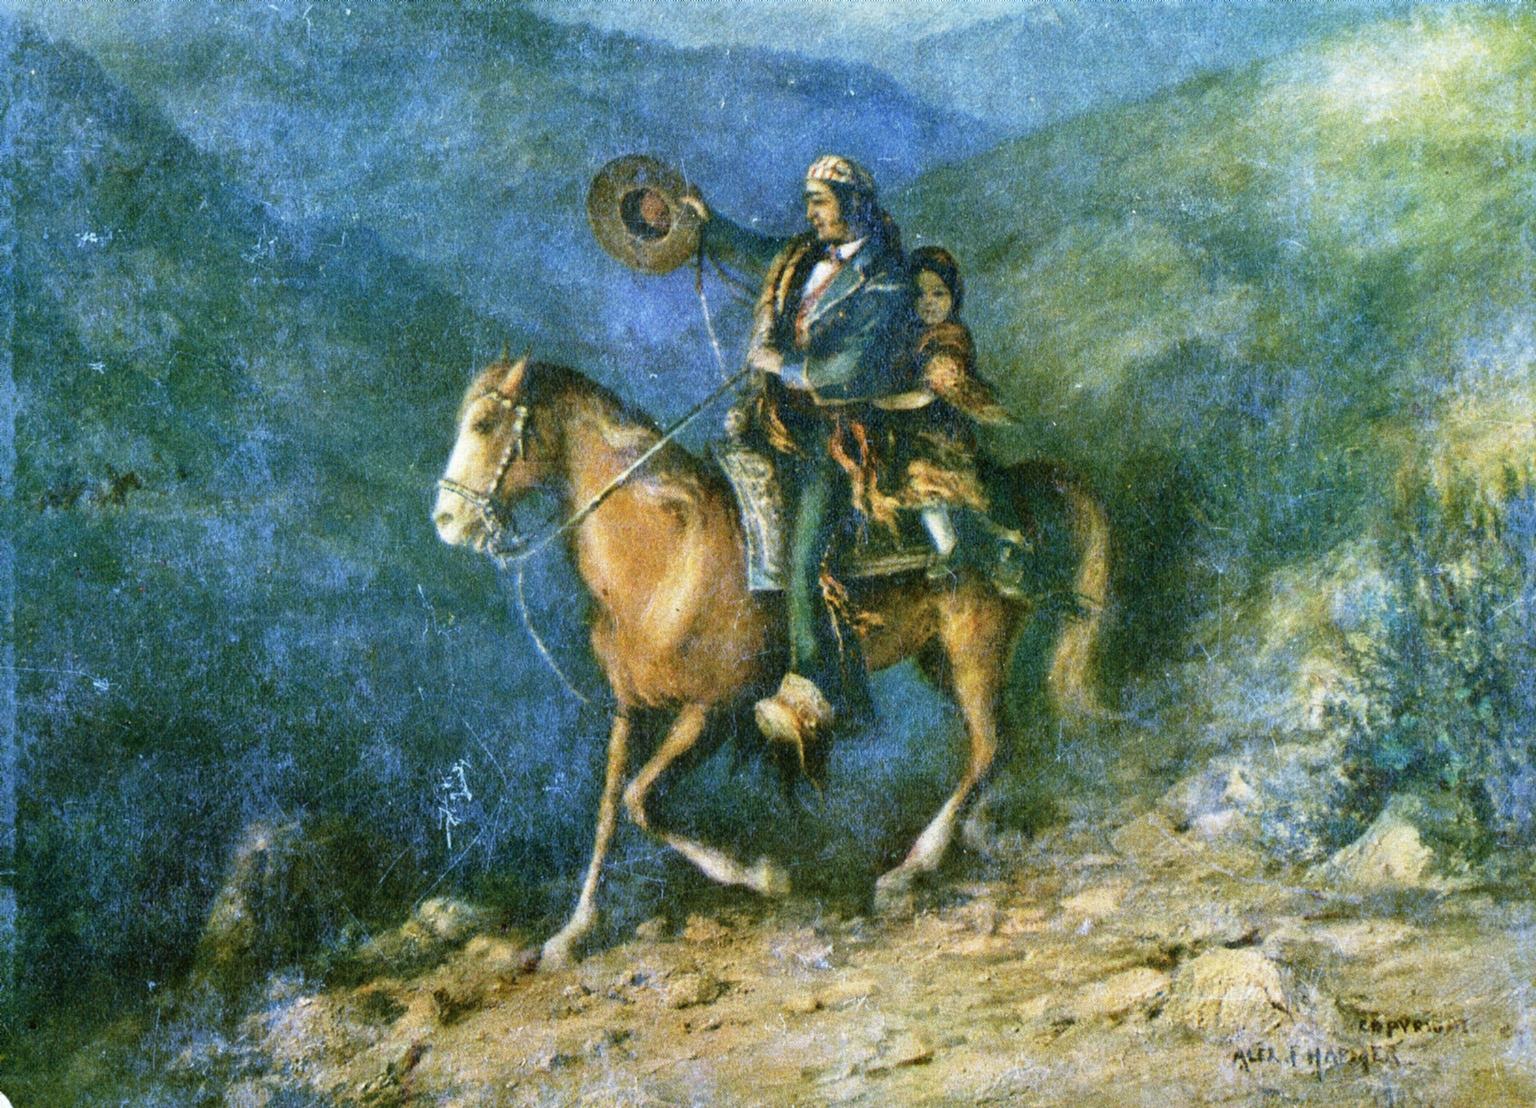 Alexander Harmer Painting Depicting Early California Life